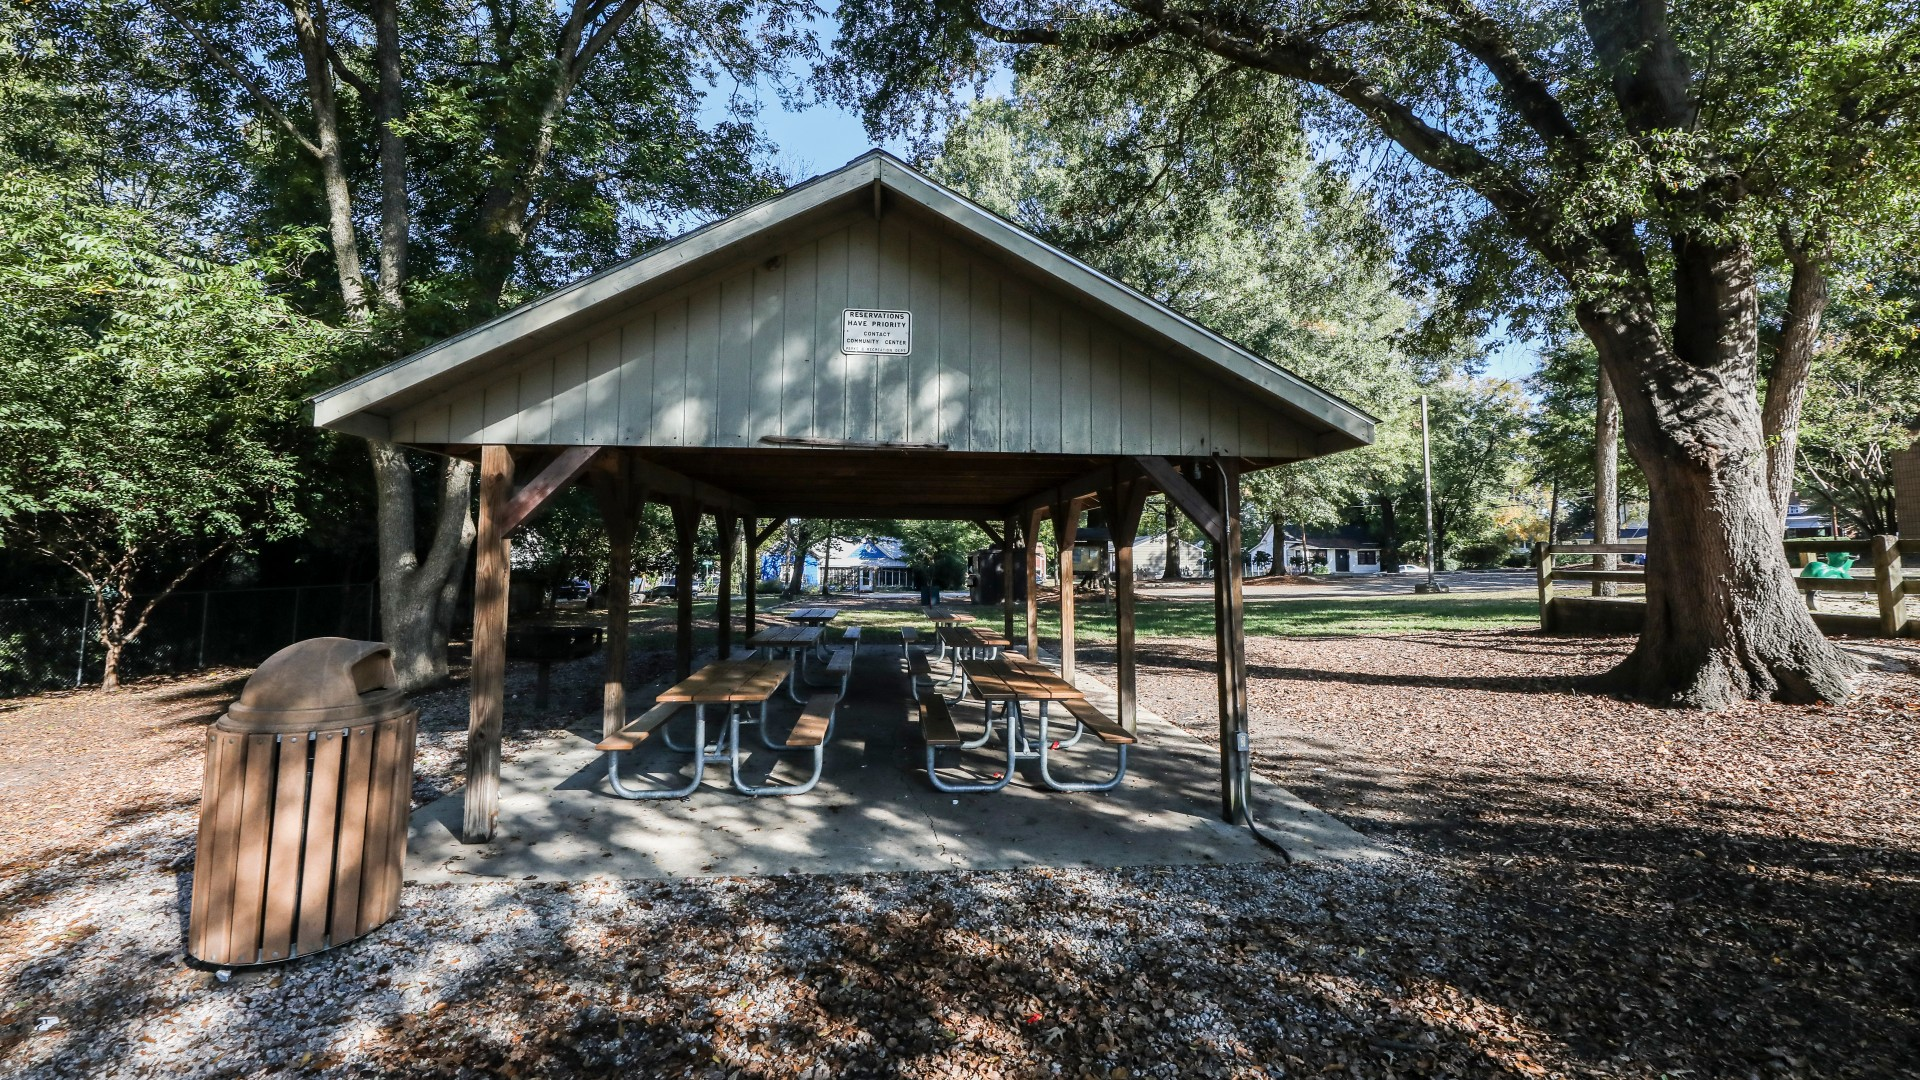 An outdoor picnic shelter with six tables and a grill at tarboro road